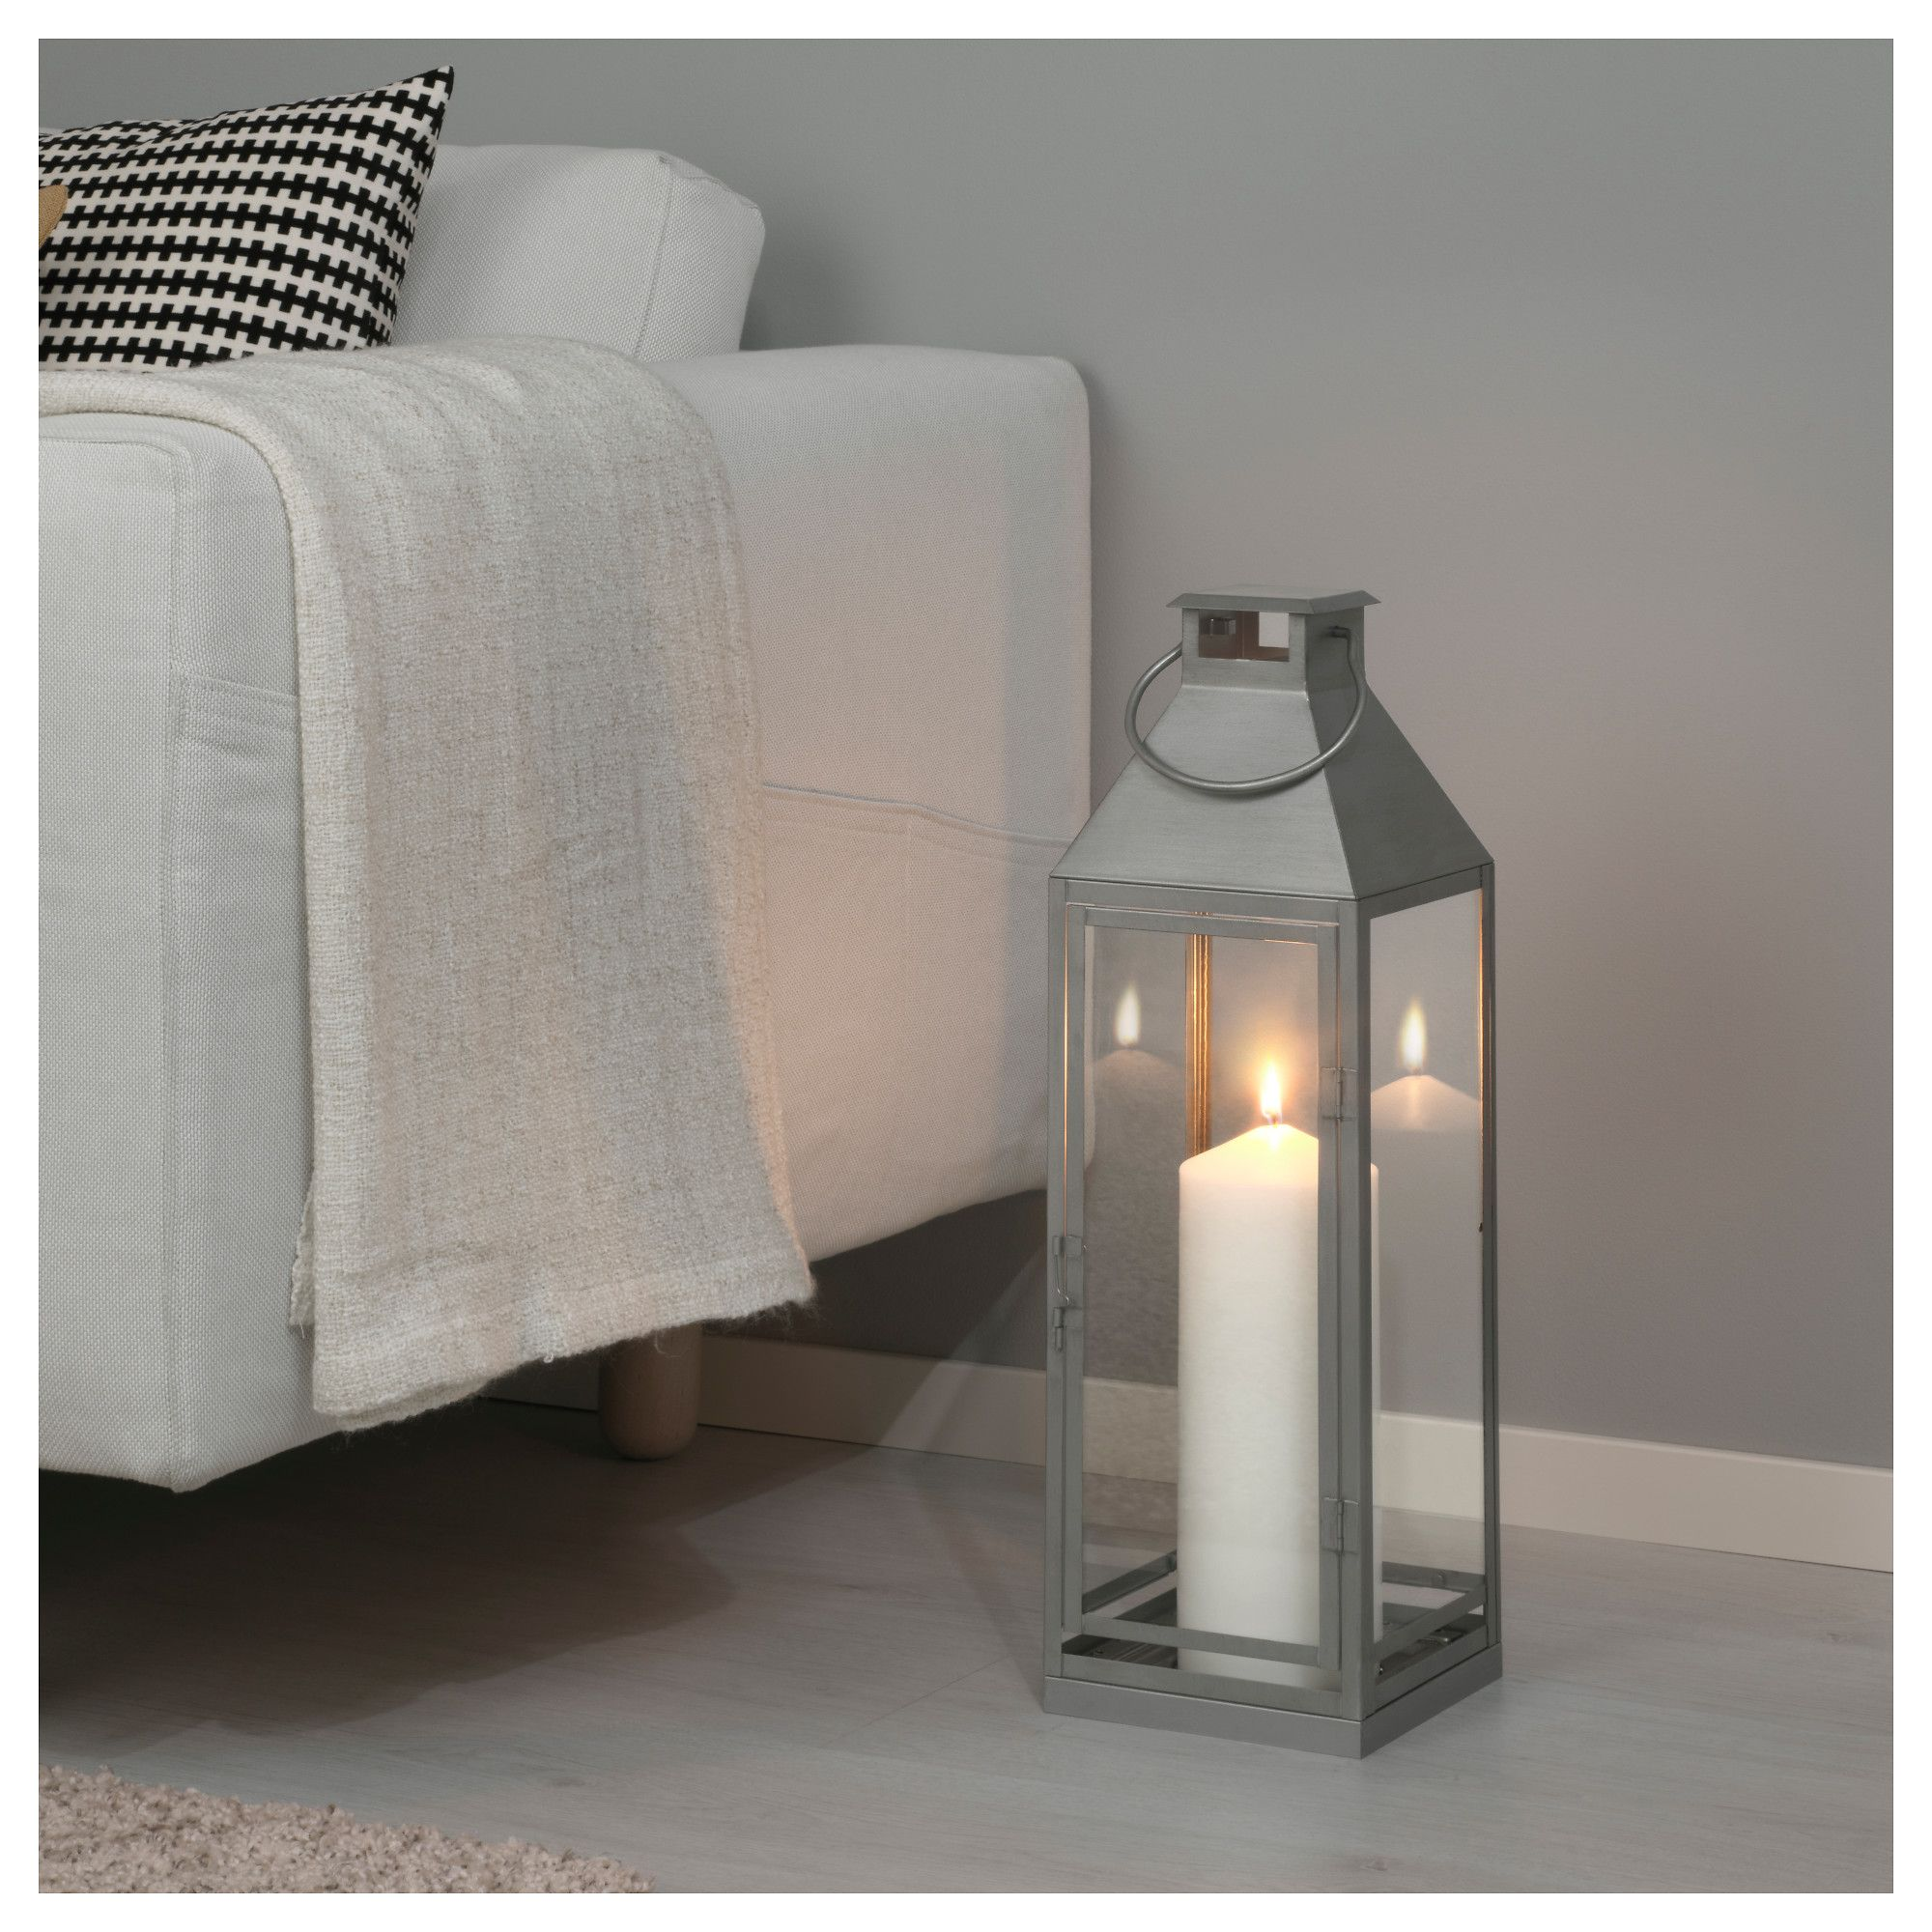 IKEA LAGRAD lantern f block candle in outdoor Suitable for both